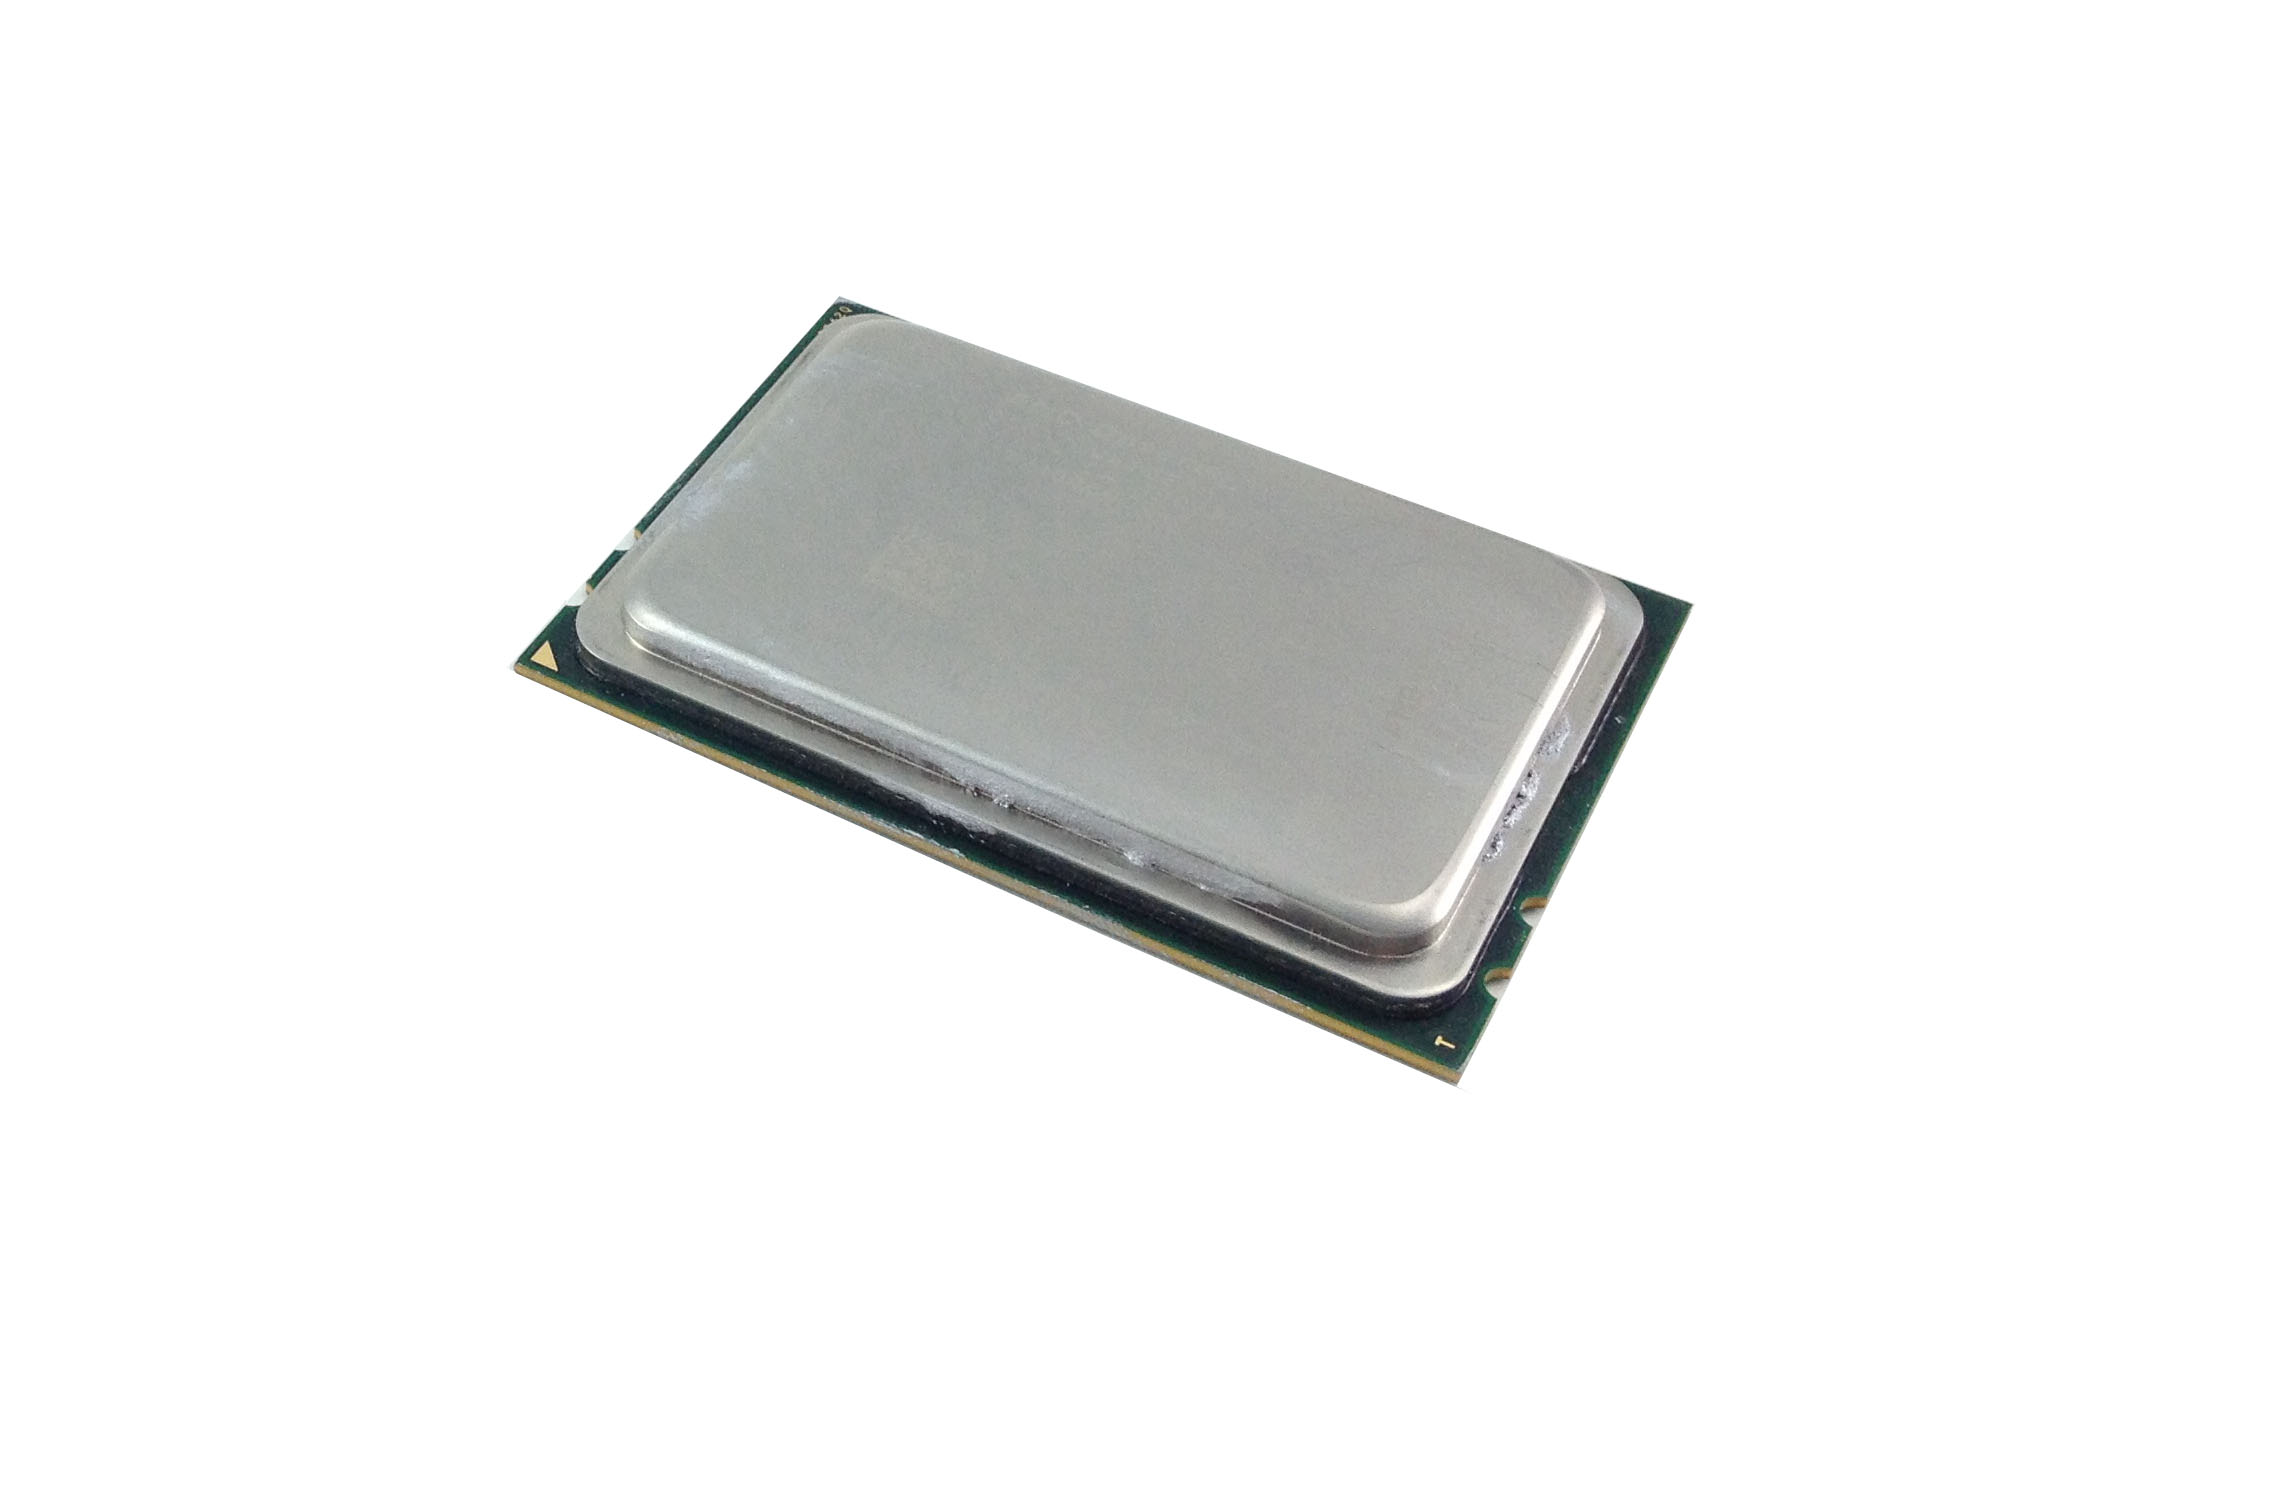 AMD OPTERON 6128 HE 2.0GHZ 8 CORE 12MB PROCESSOR (OS6128VAT8EGO)